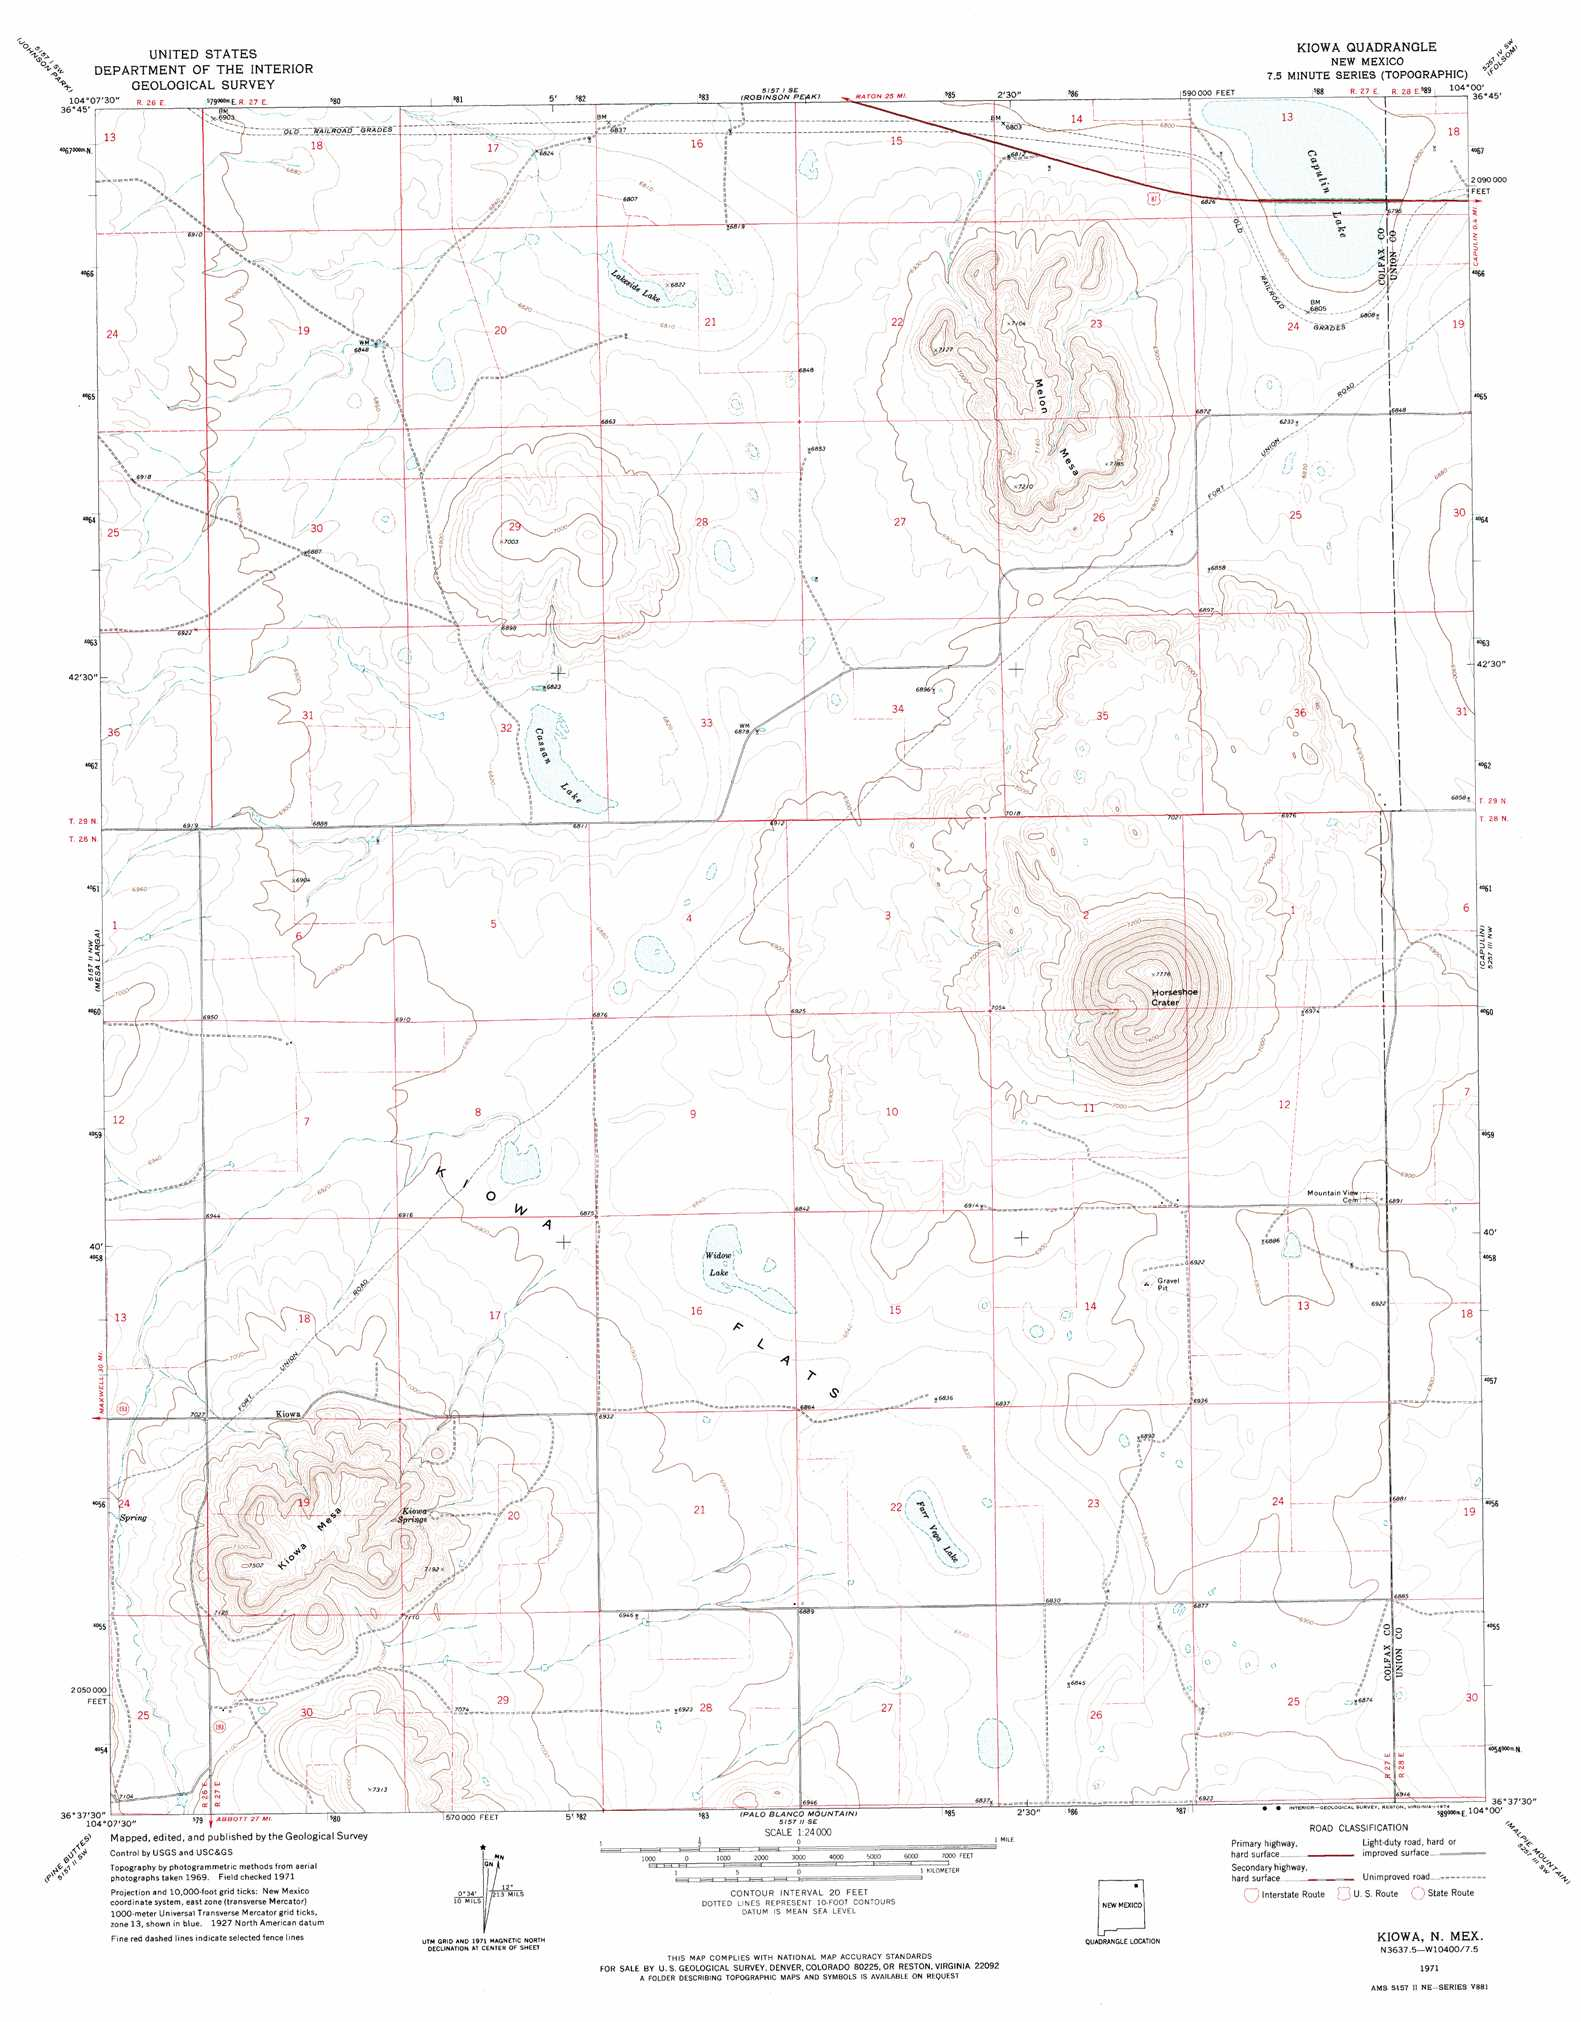 Kiowa topographic map, NM - USGS Topo Quad 36104f1